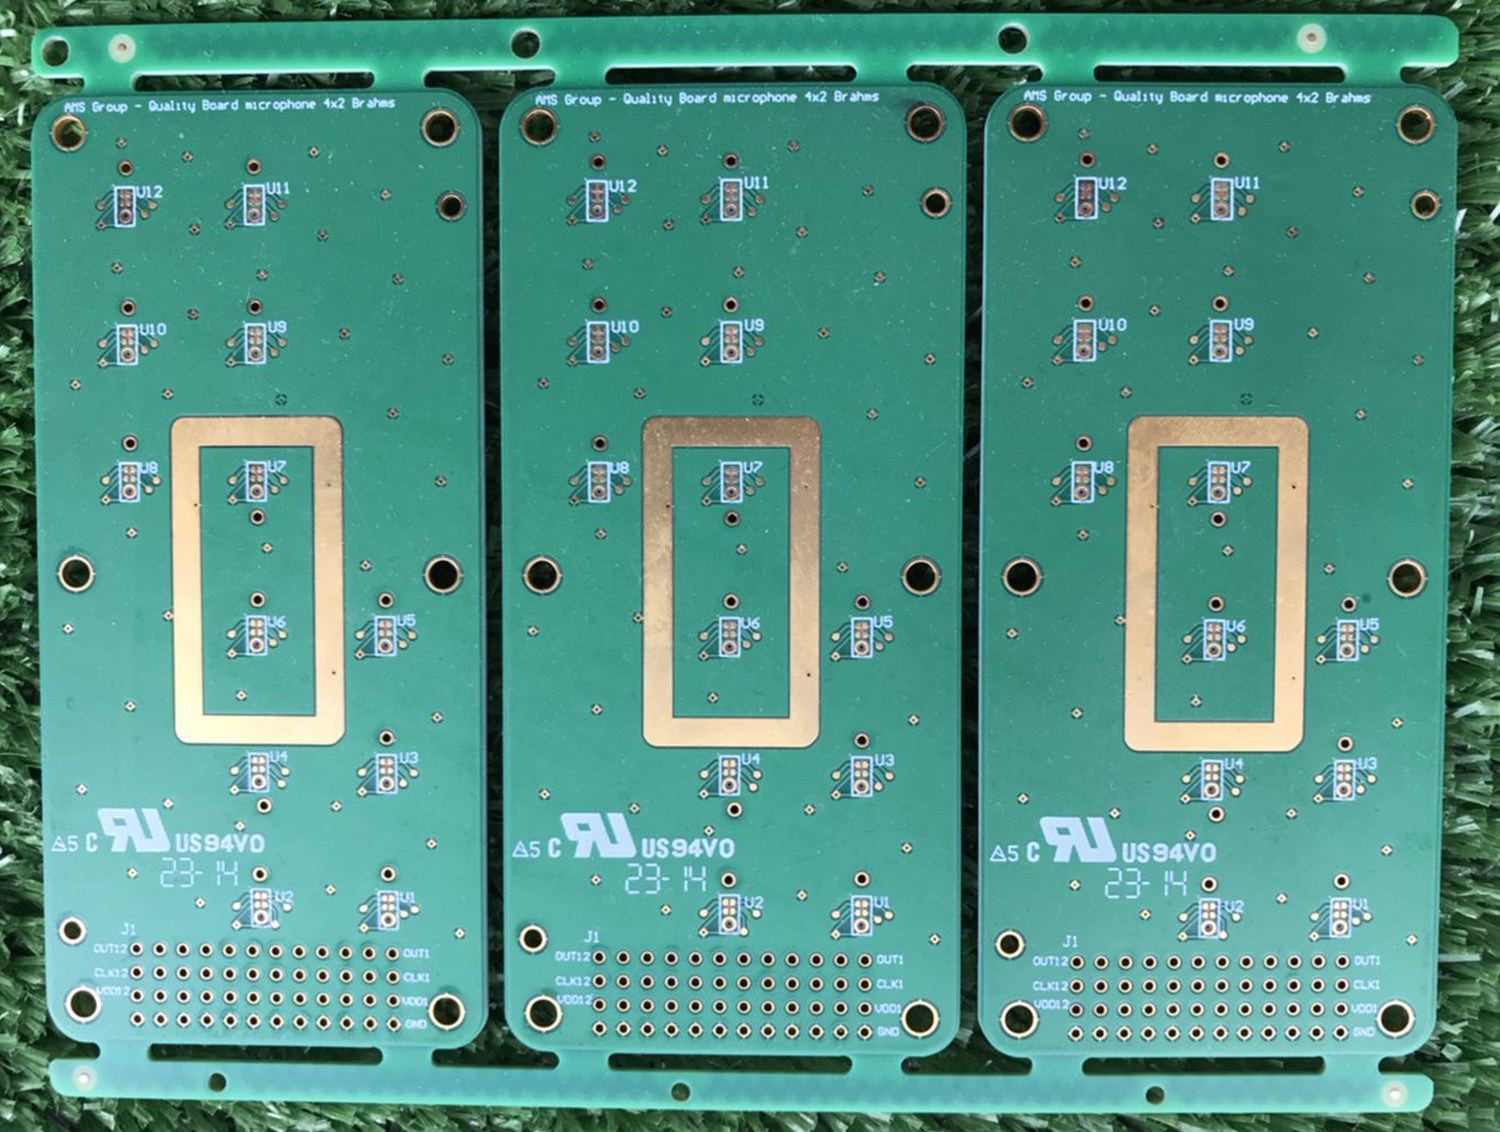 Wholesale Pcb Circuit Buy Reliable From Shenzhen Oem Electronic Printed Board Manufacturerpcb 4 Layer Enig High Precise Thick Copper